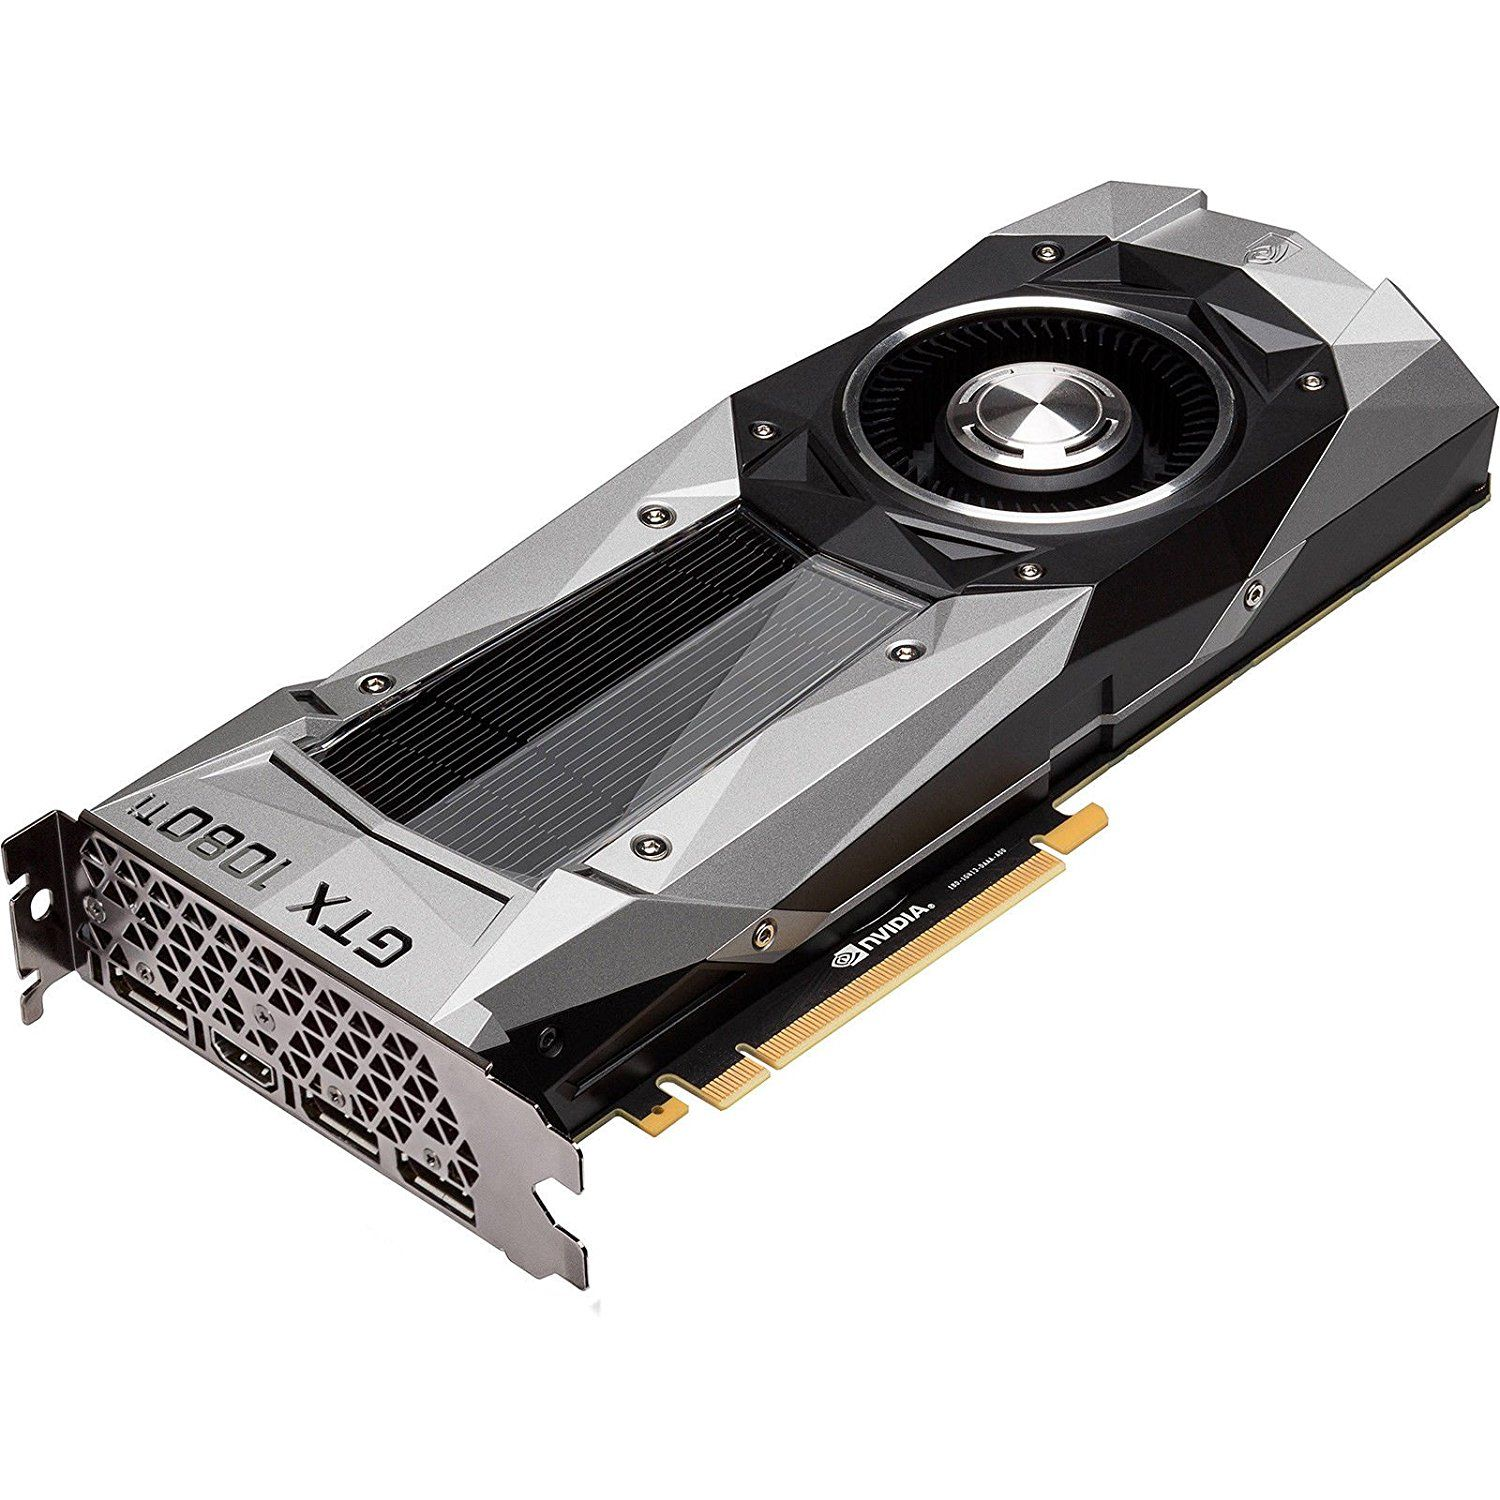 Nvidia Geforce Gtx 1080 Ti Fe Founder S Edition Graphic Card Nvidia Video Card